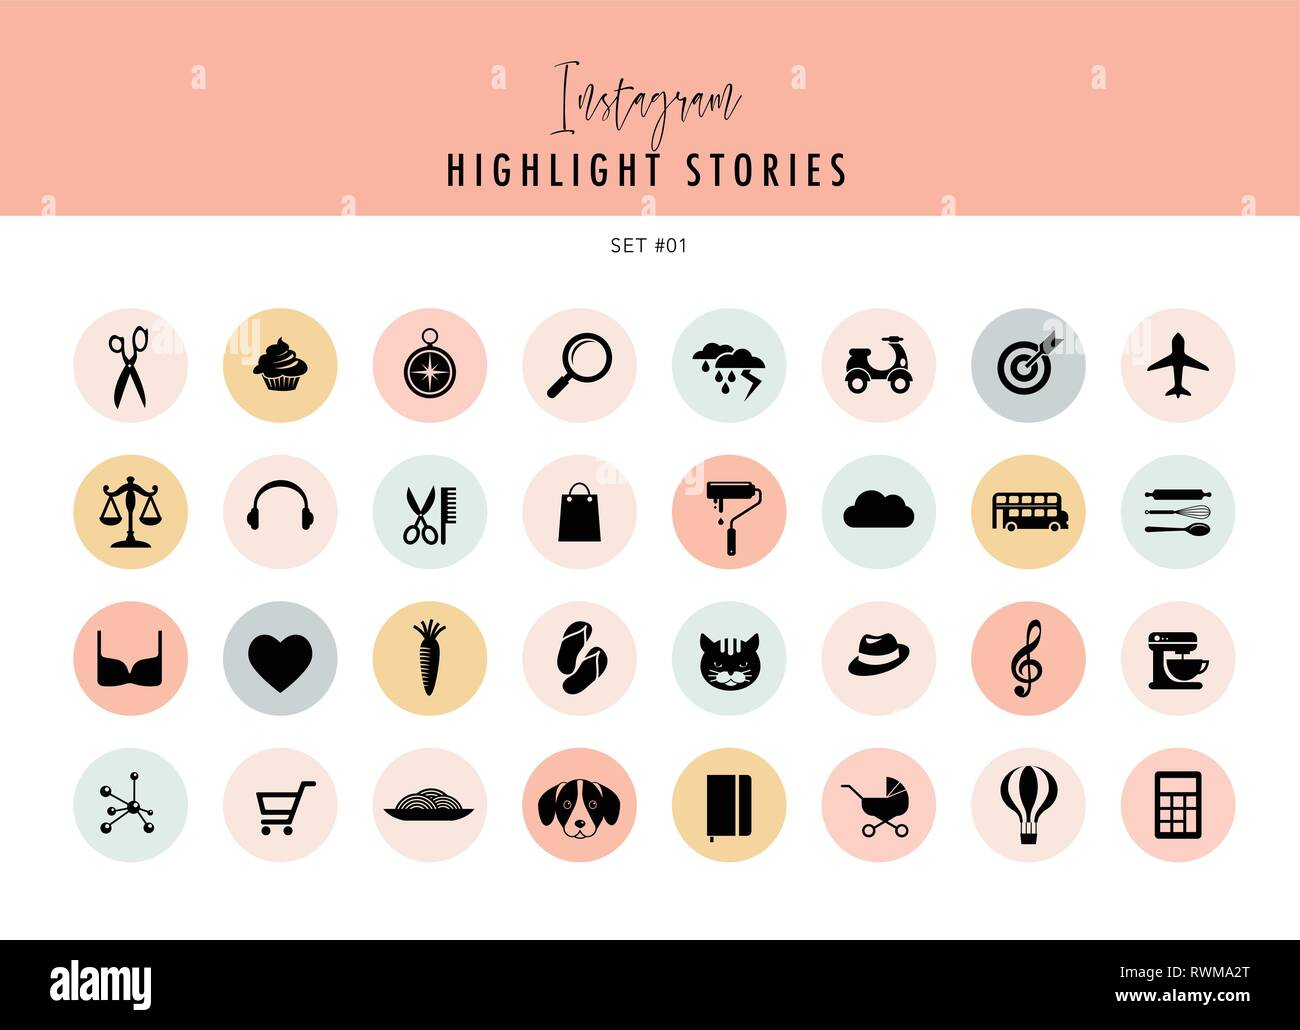 Instagram Highlights Stories Covers Icons Collection A Fully Editable Scalable Vector File Stock Vector Image Art Alamy